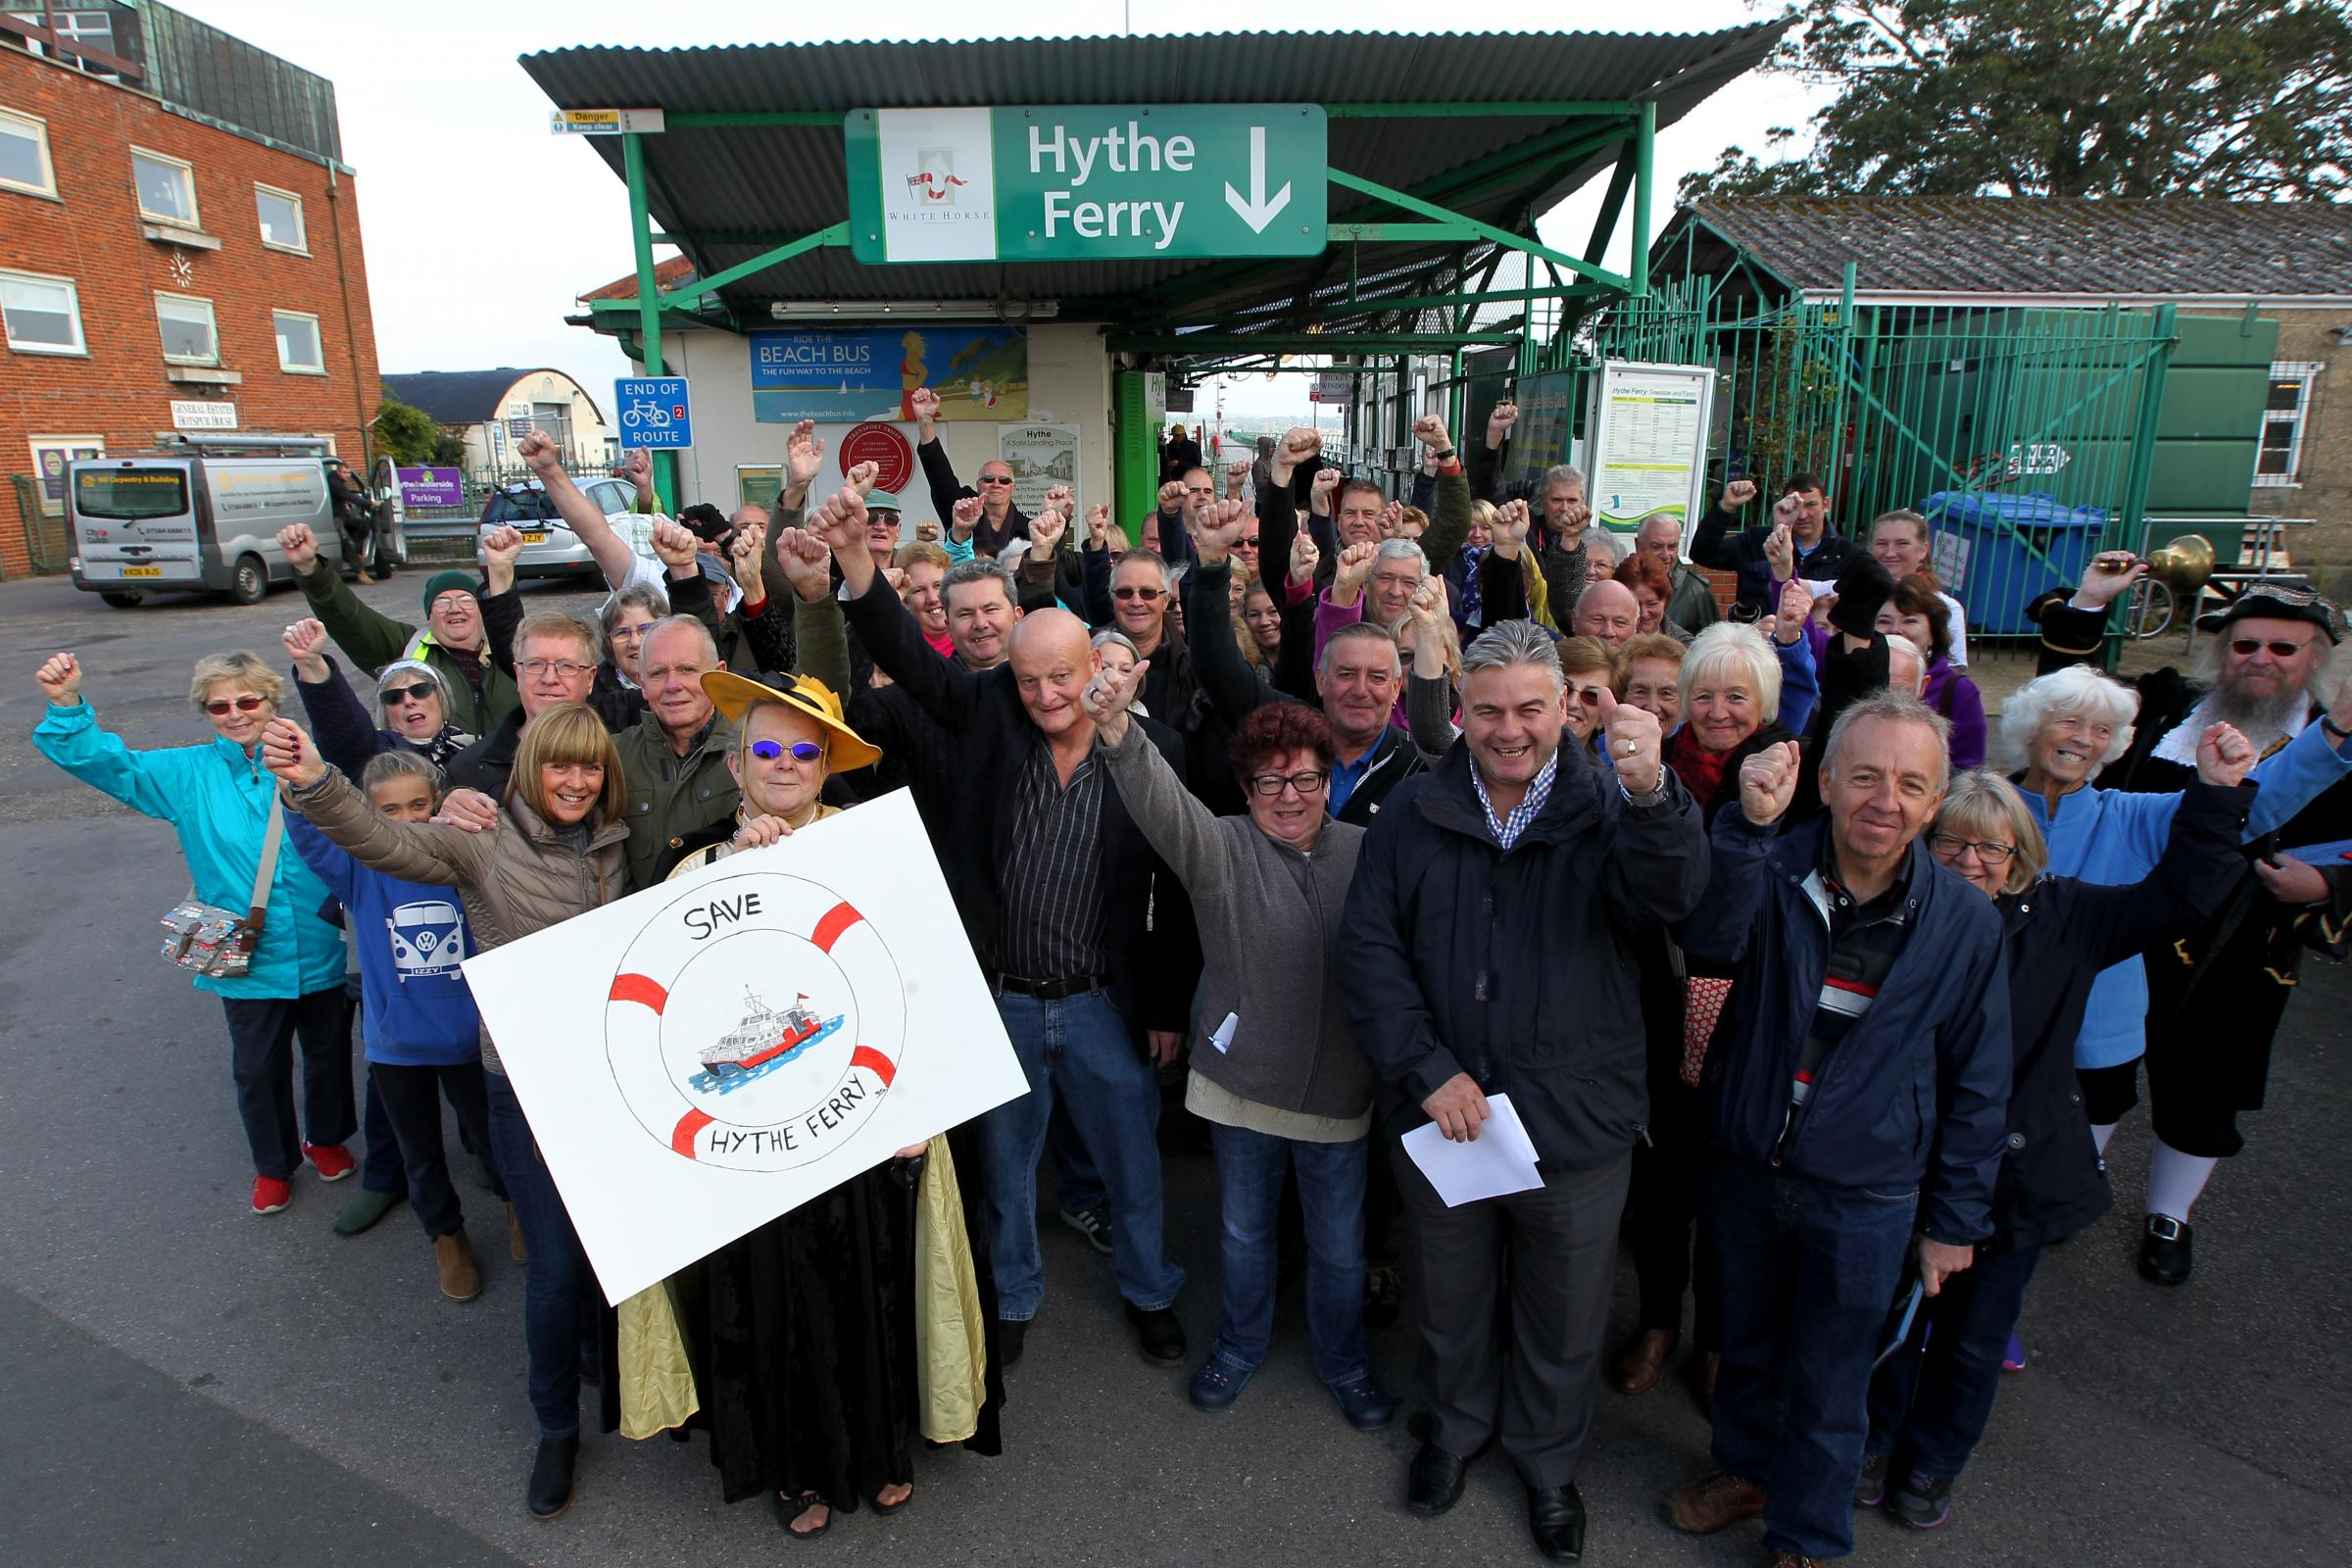 Calls for pier revamp to save Hythe ferry